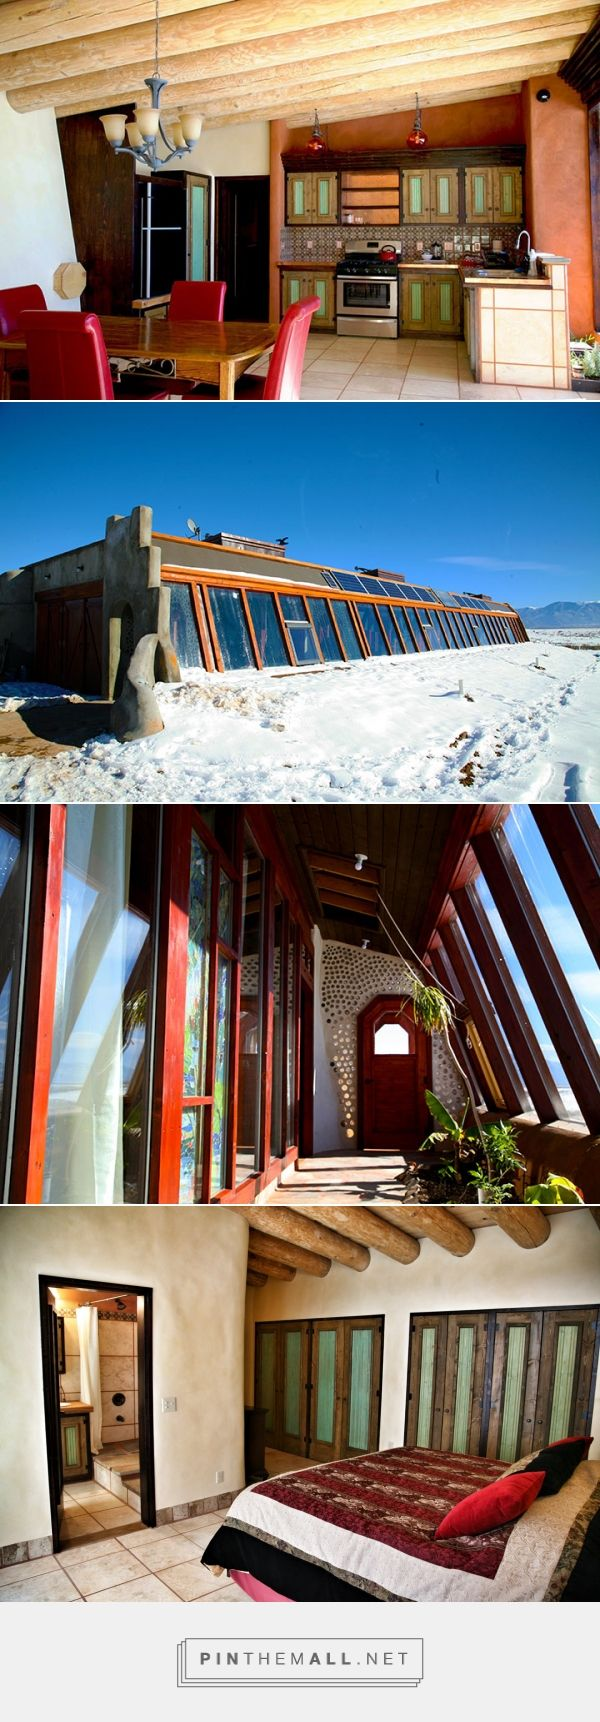 Earthships can be modern. This Waybee Earthship is